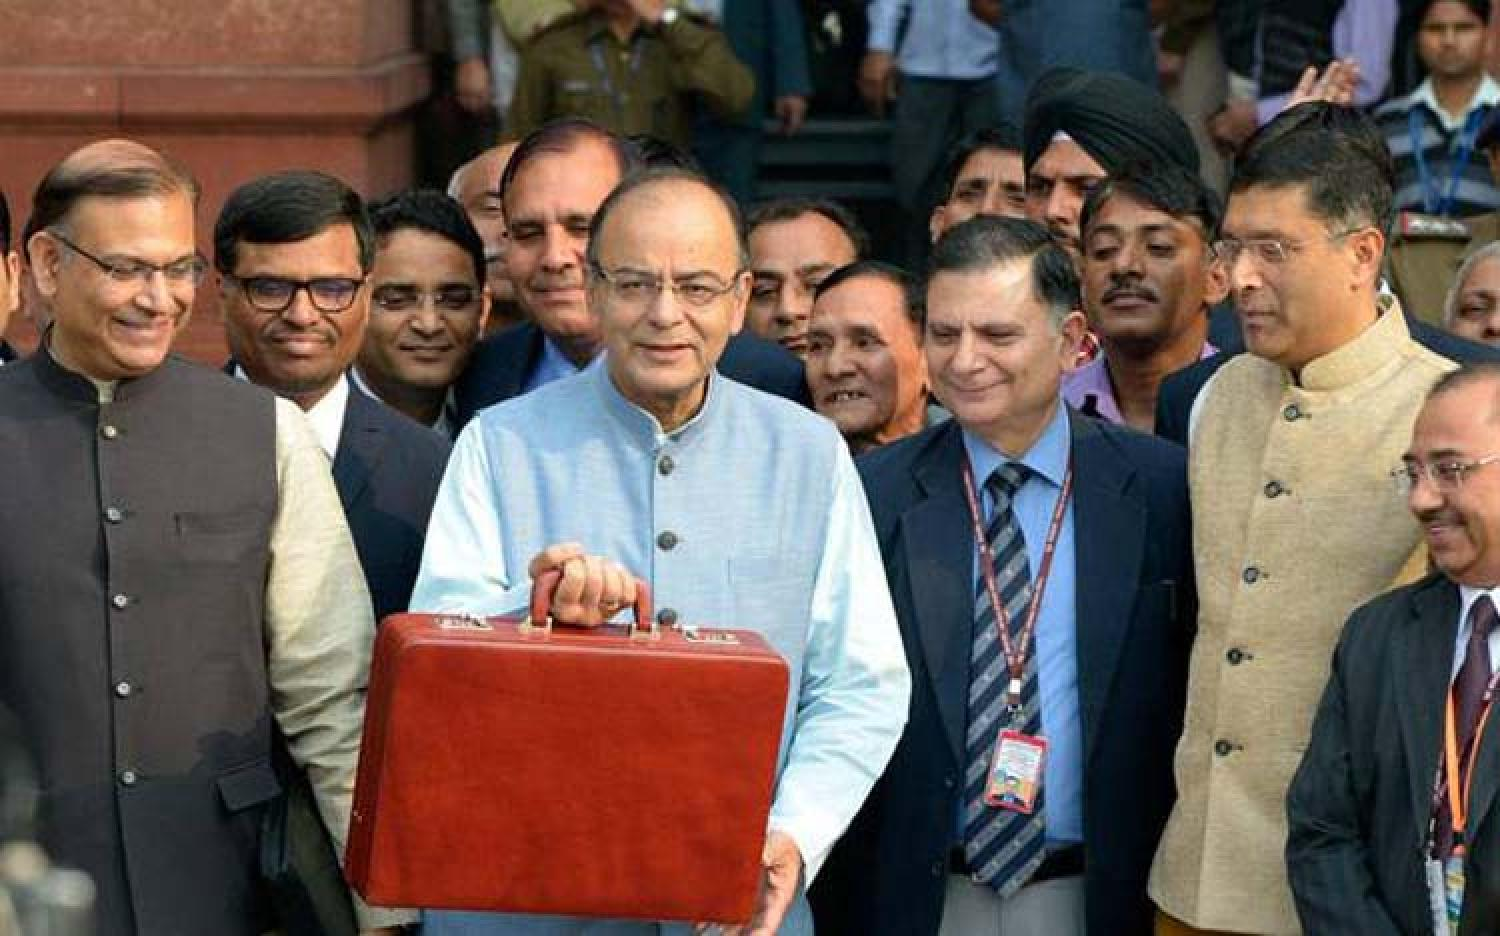 Budget 2018: Expectations across market and corporate sectors